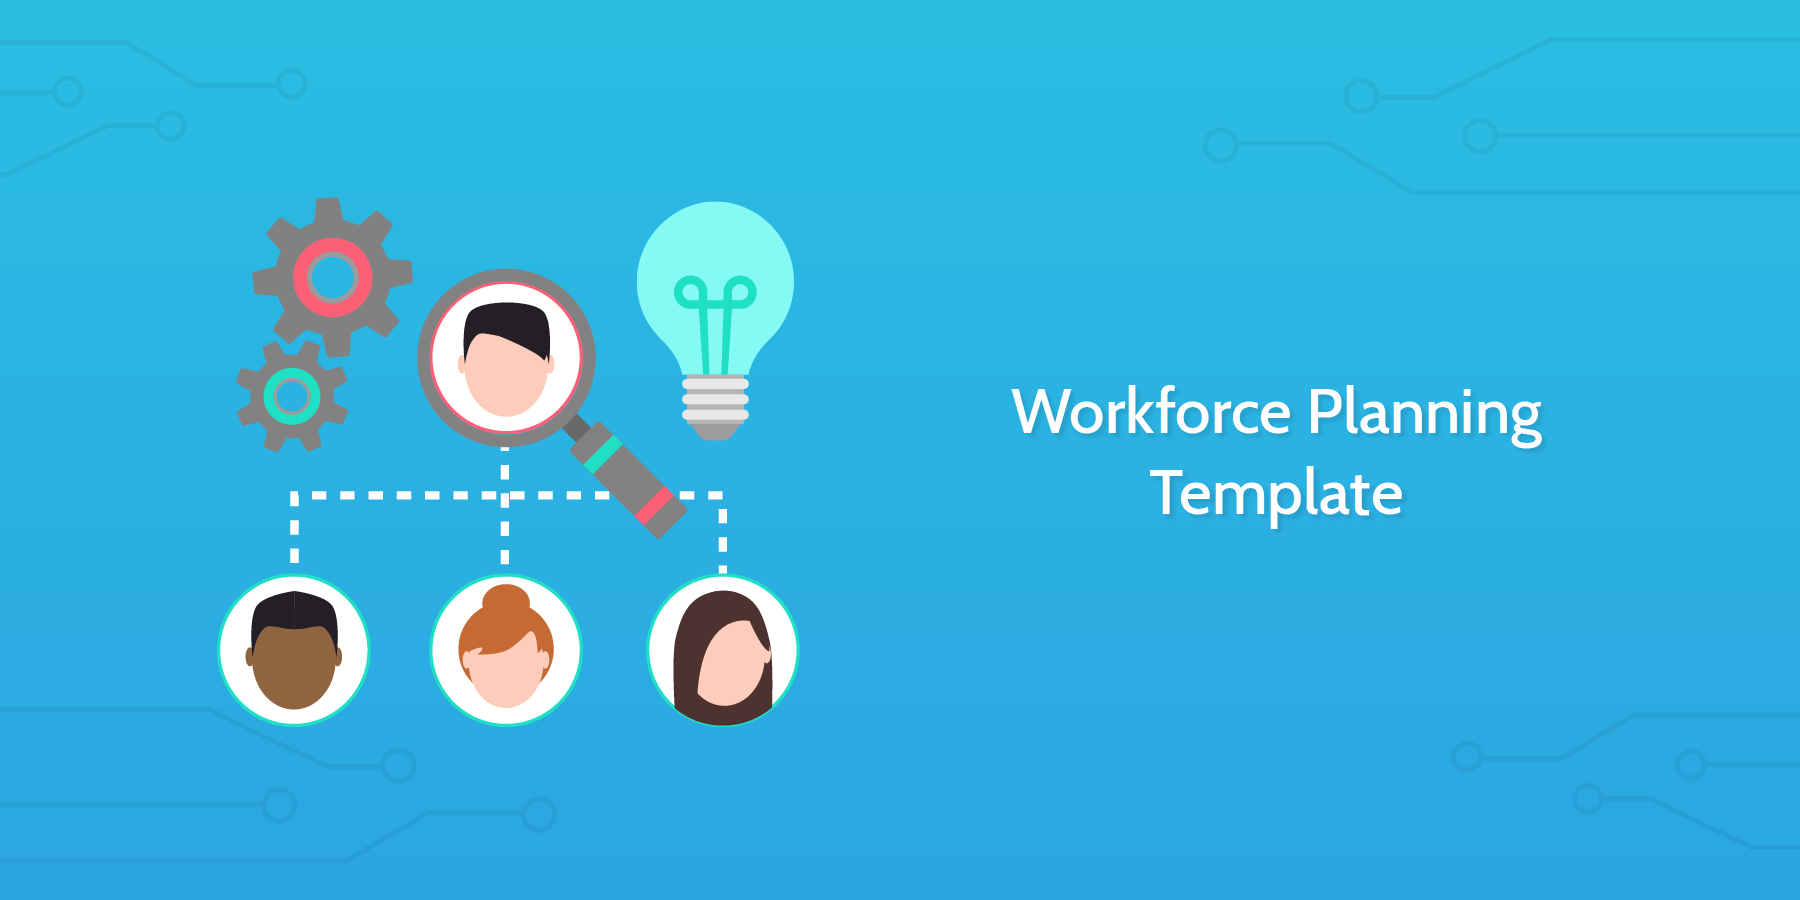 Introduction to the Workforce Planning Template: